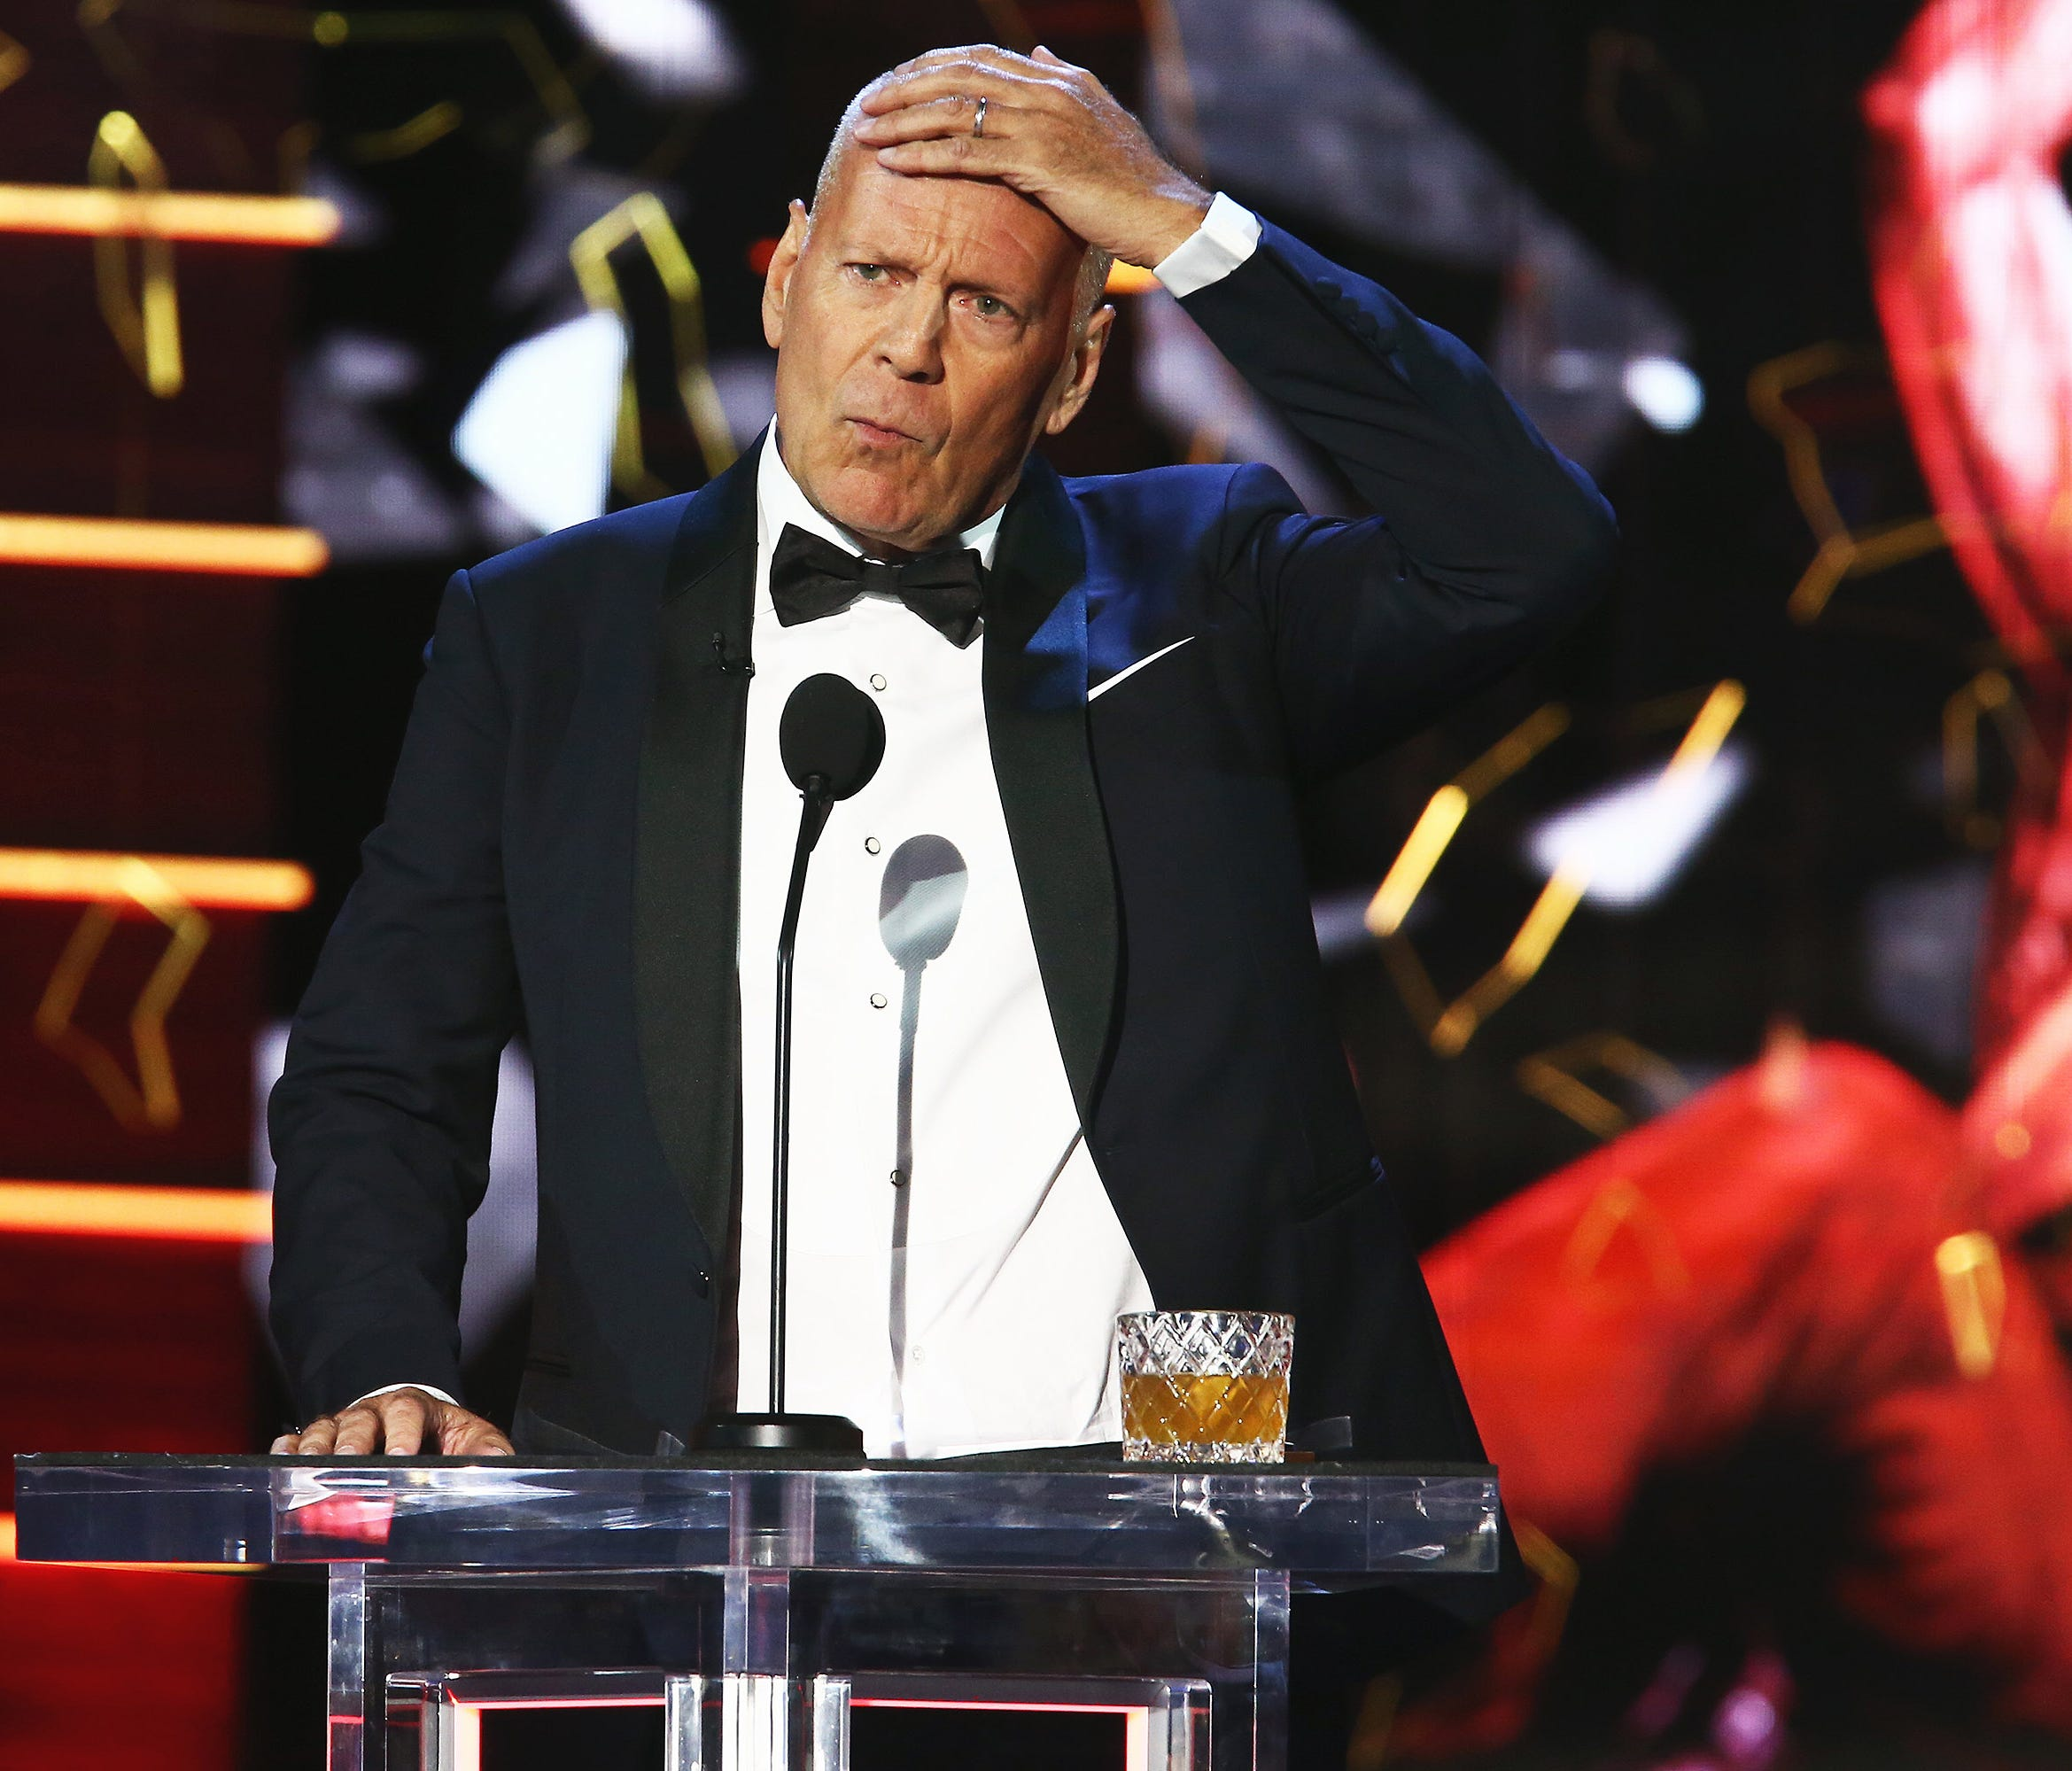 Bruce Willis is the target of insults in a bizarre night filled with #MeToo and